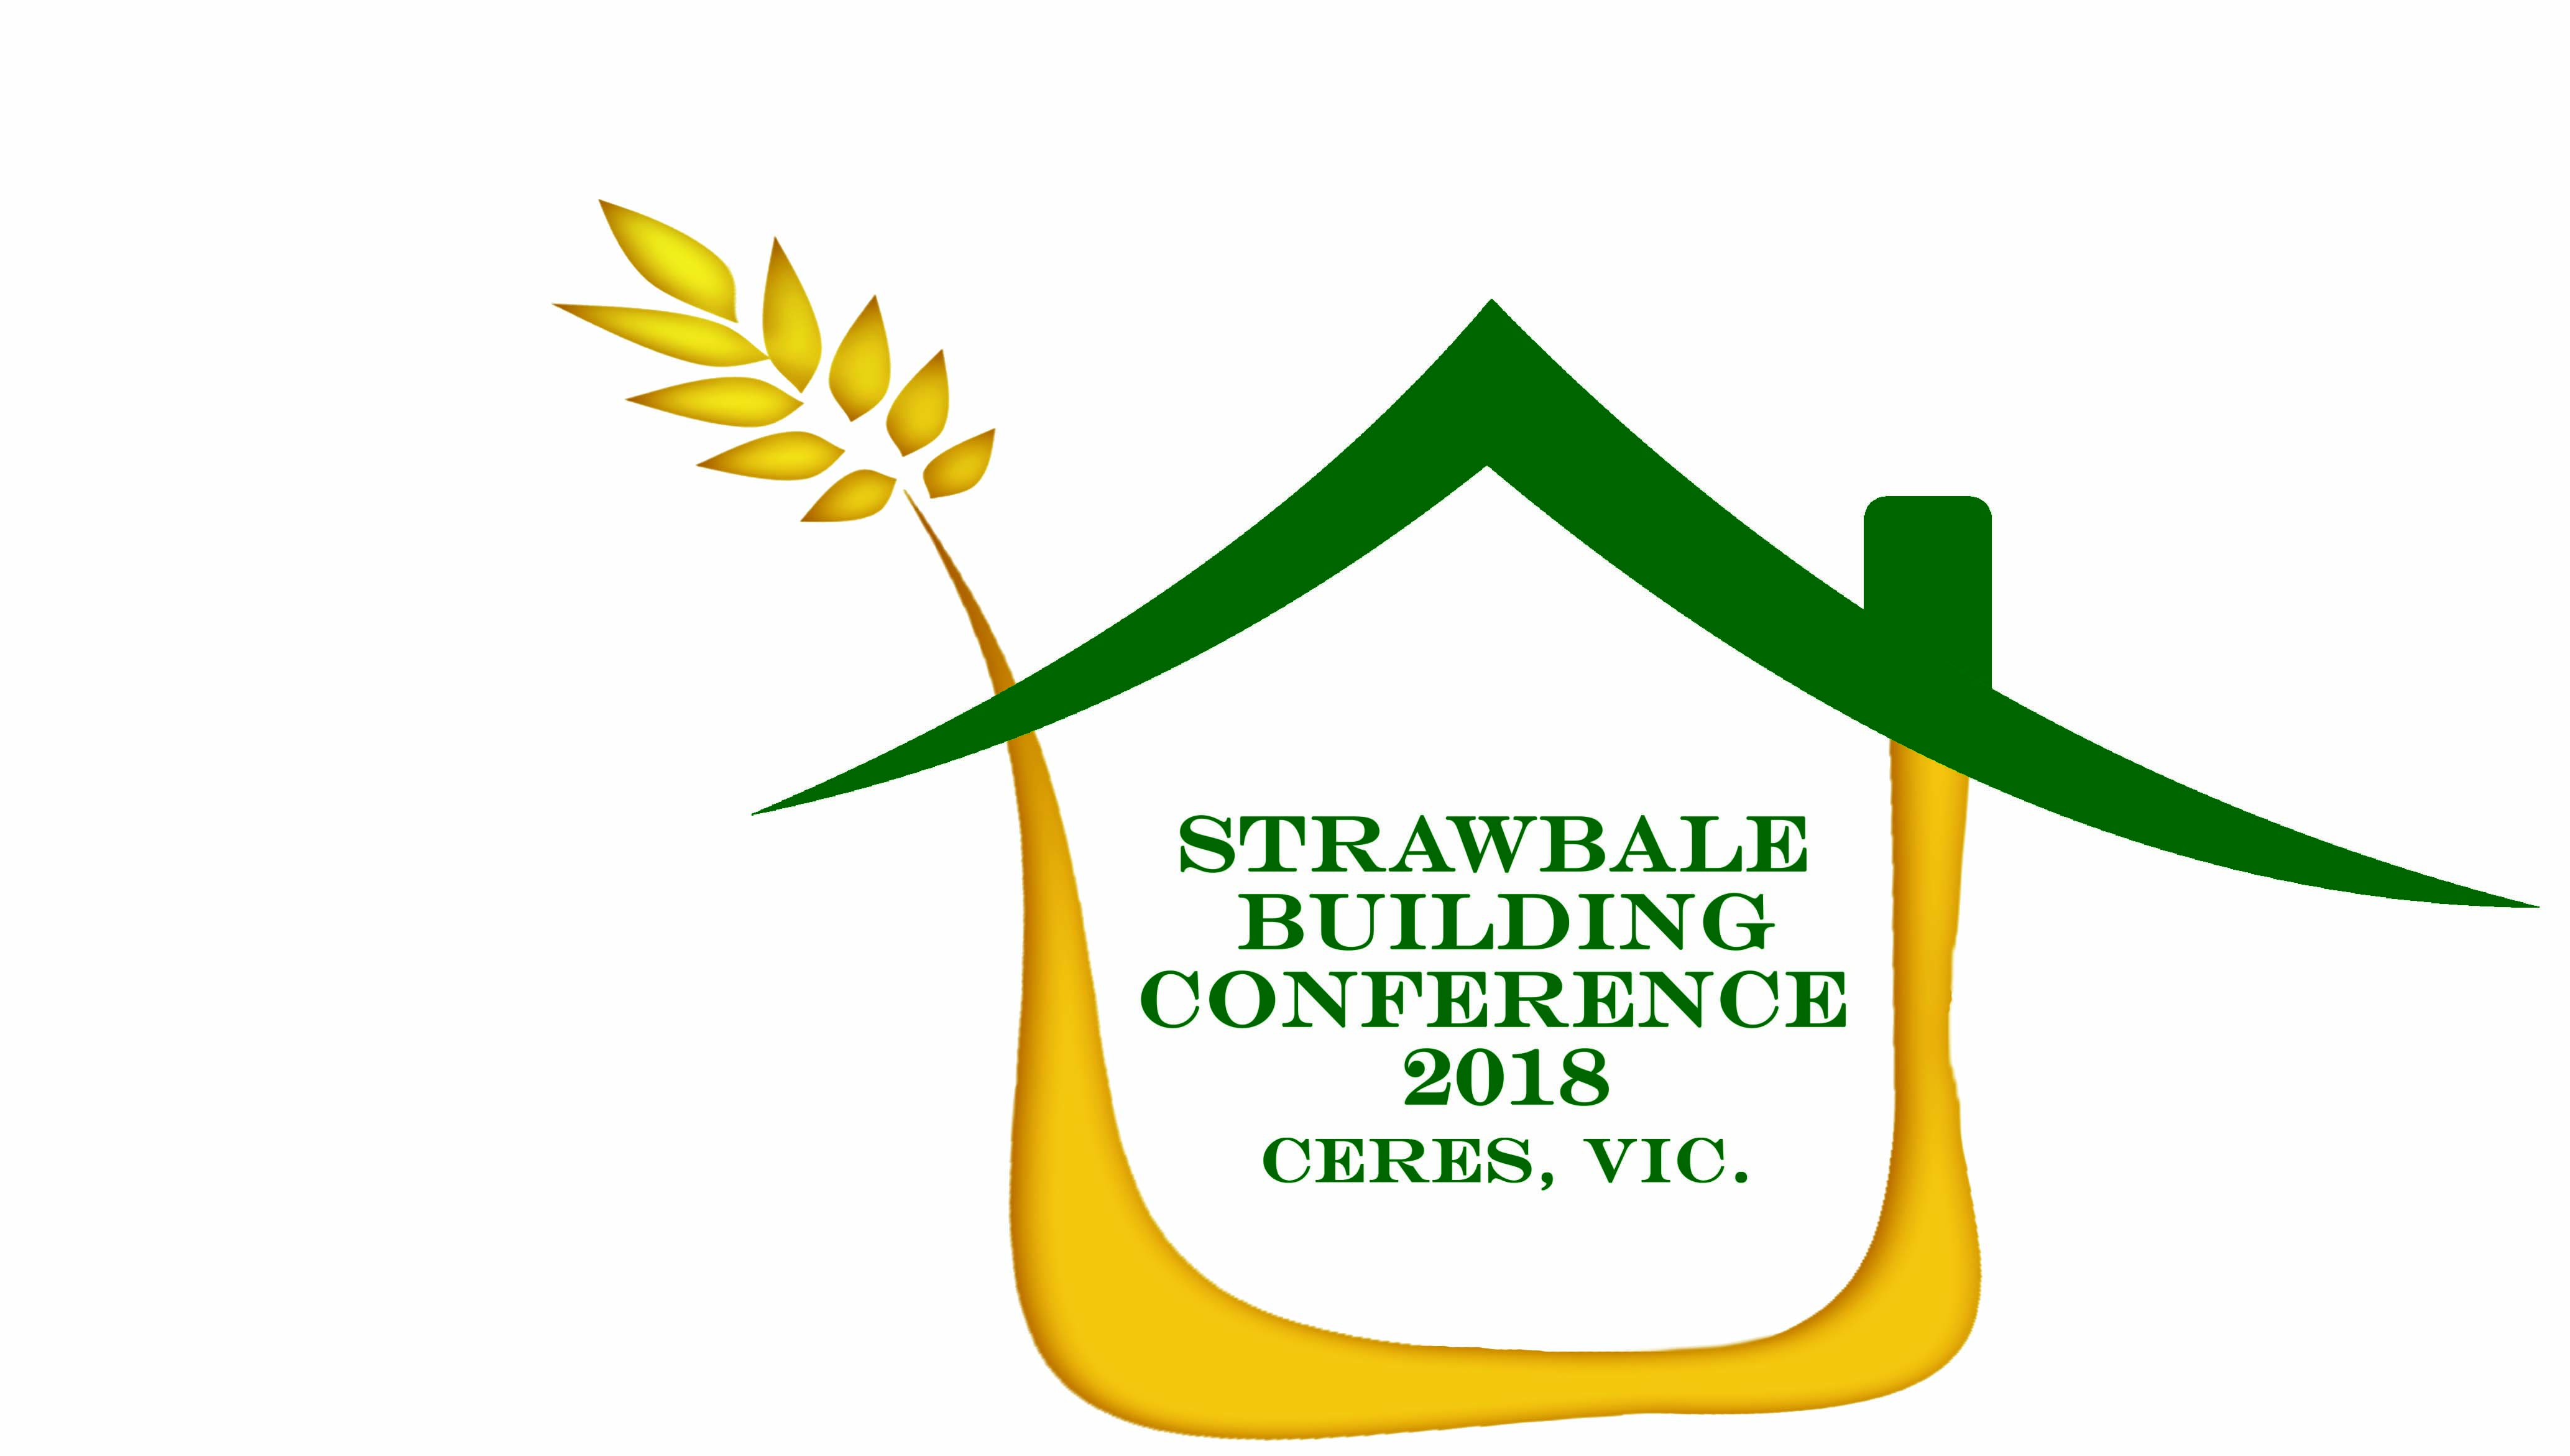 2018 Straw Bale Conference Logo